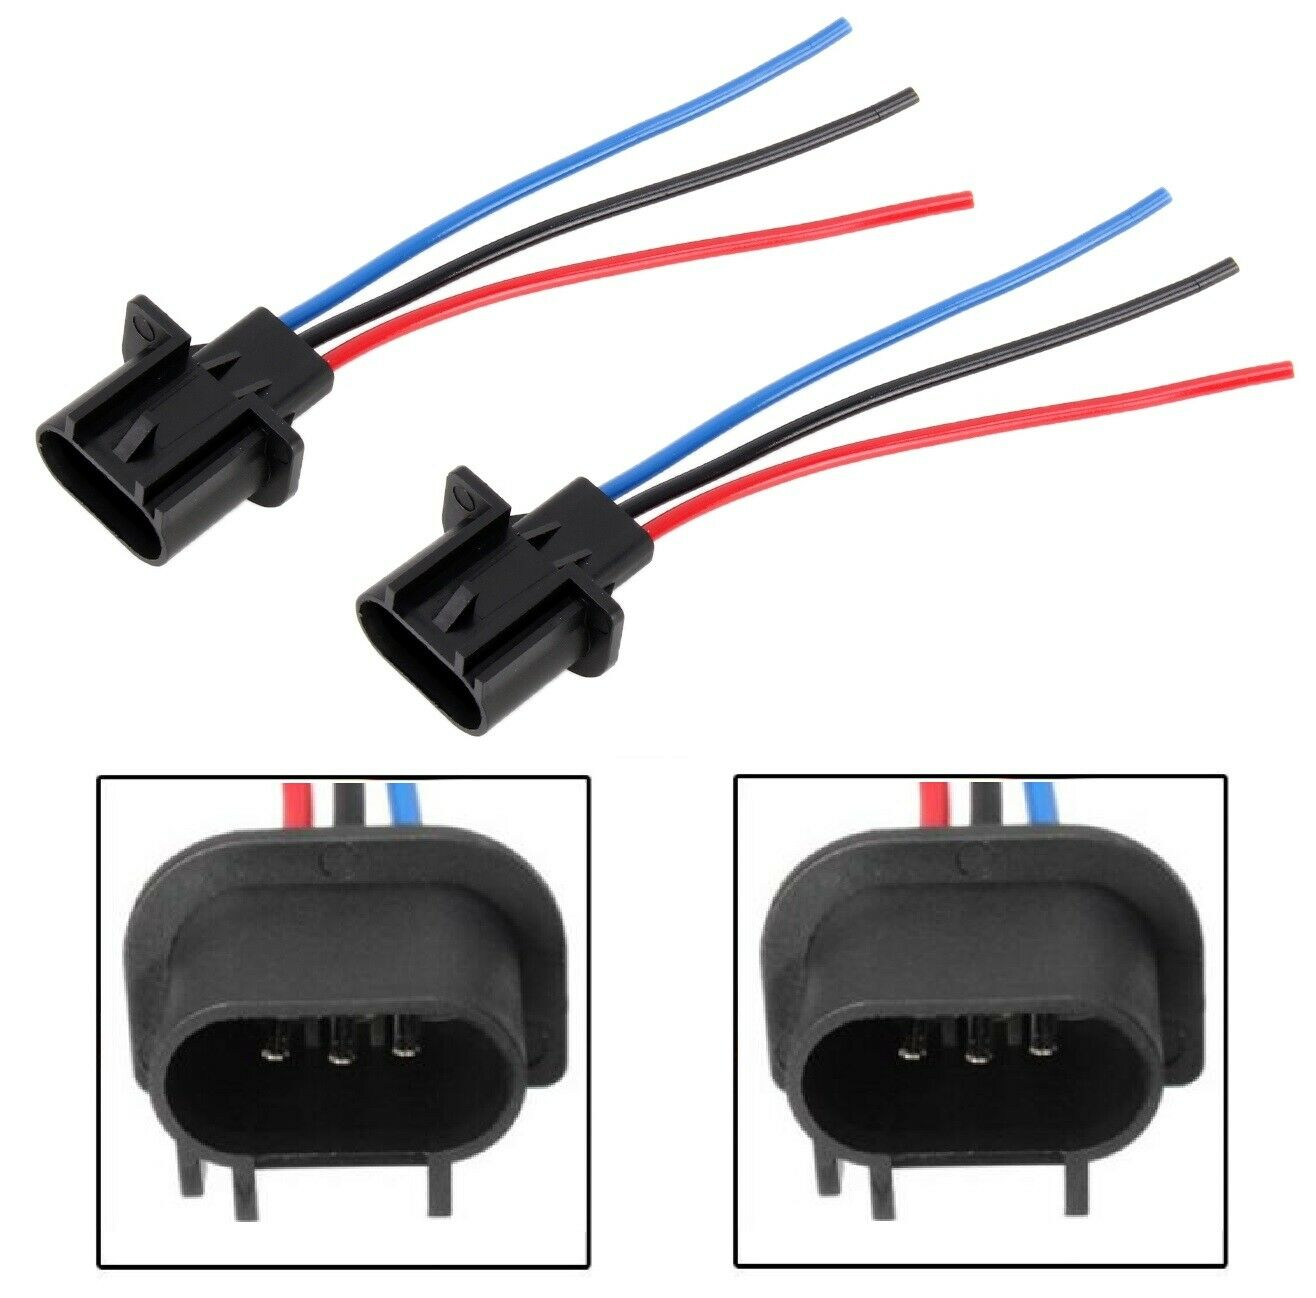 H13 Plug Harness Detailed Wiring Diagrams Diagram Wire Pigtail Male 9008 Two Plastic Headlight Replacement Hid Kits